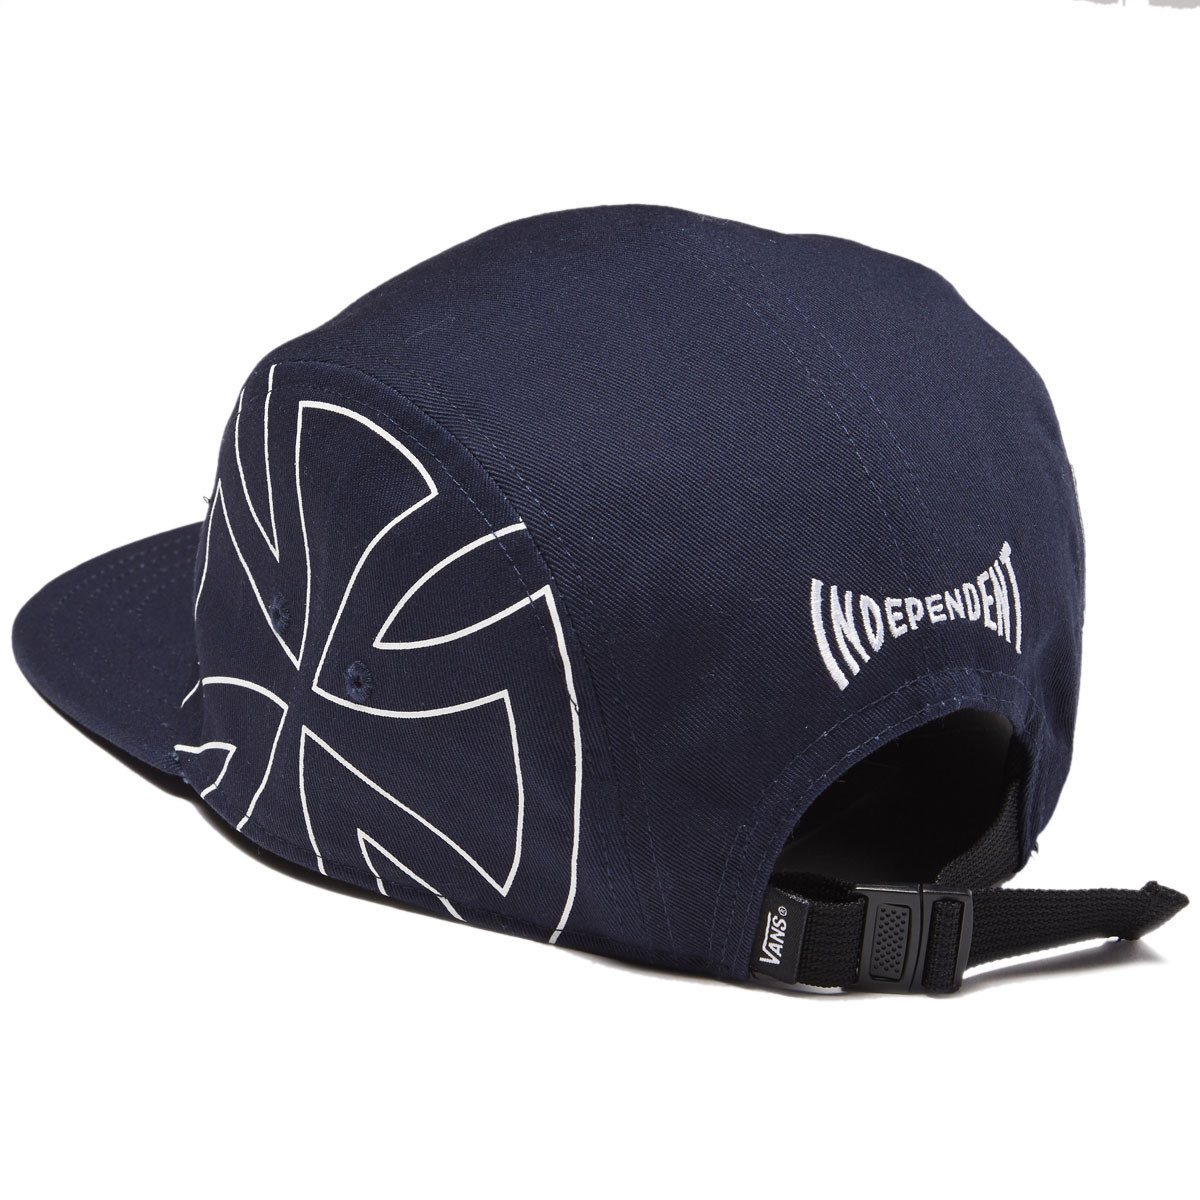 Vans x Independent 5-panel Camper Hat - Dress Blues 2ad56cd85a8